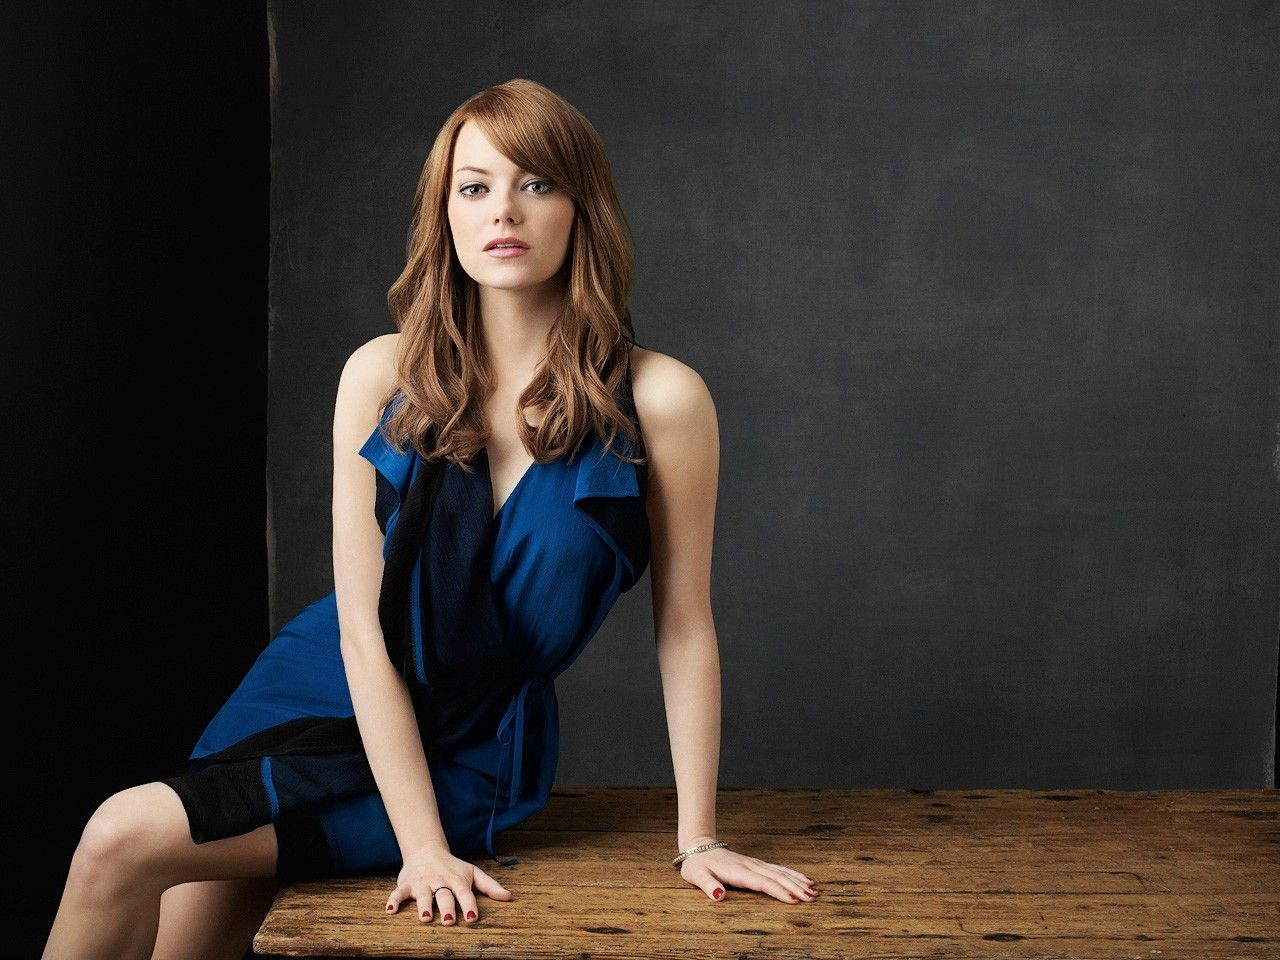 Emma Stone Hot wallpaper #5